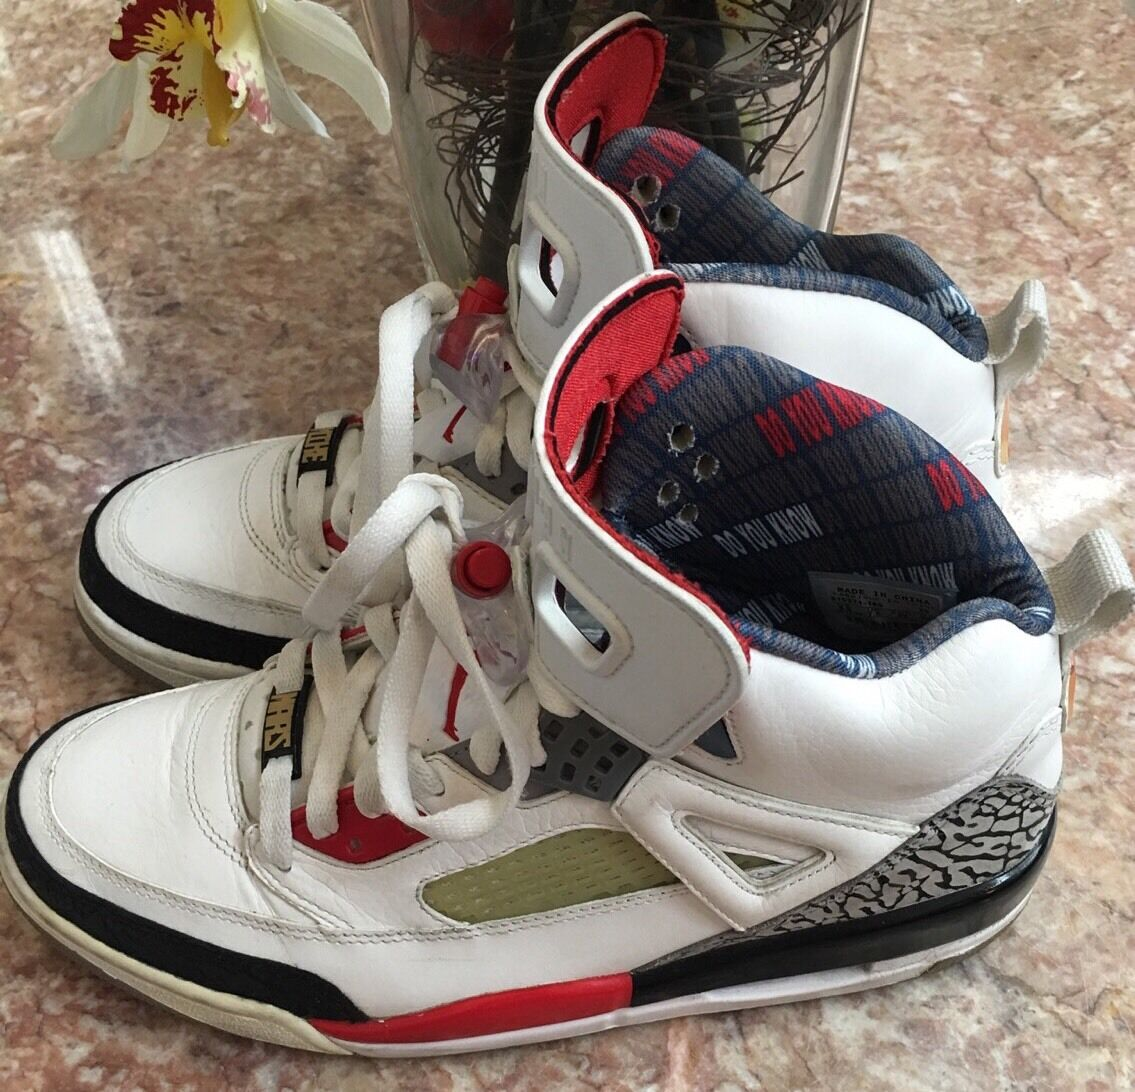 Nike Jordan Spizike - Men's White/fire red-black Sneakers Sz 8.5 - Spizike 315371-165 EUC 969738